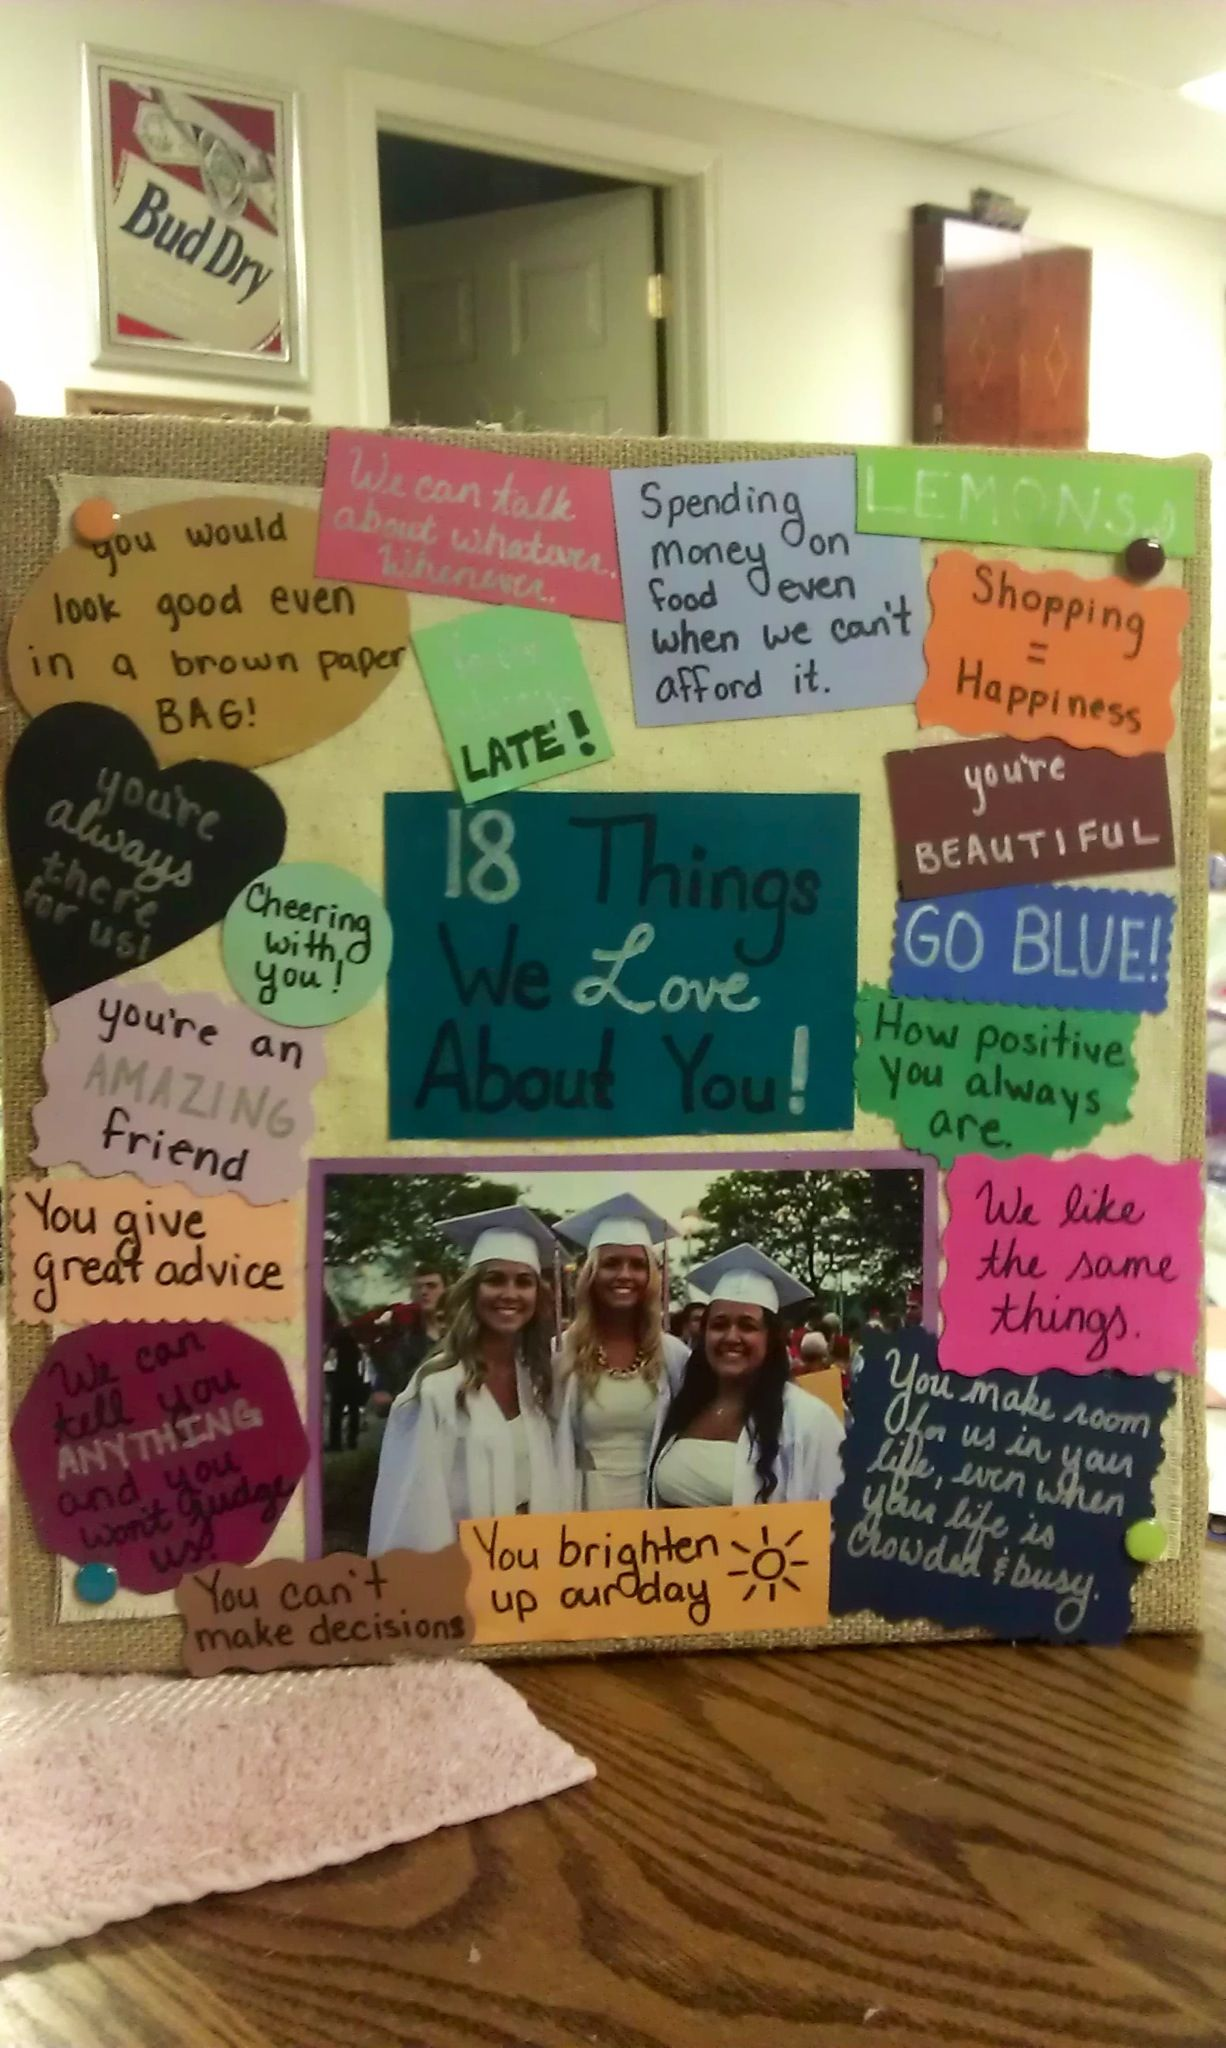 Me and my best friend made this for our best friends 18th Easy gift ideas for friends